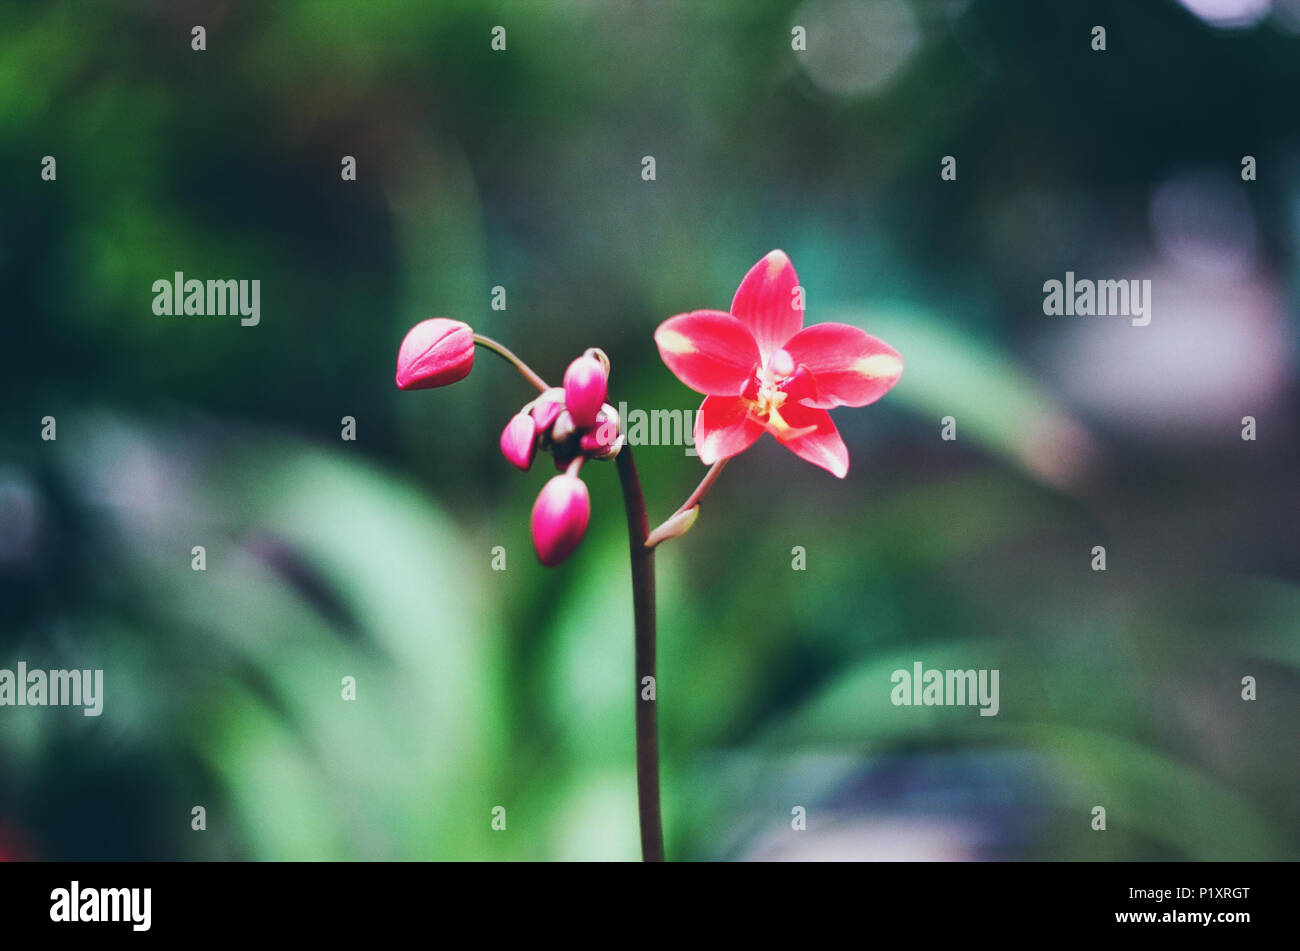 Beautiful Natural Flowers Background Stock Photo: 207728328 - Alamy